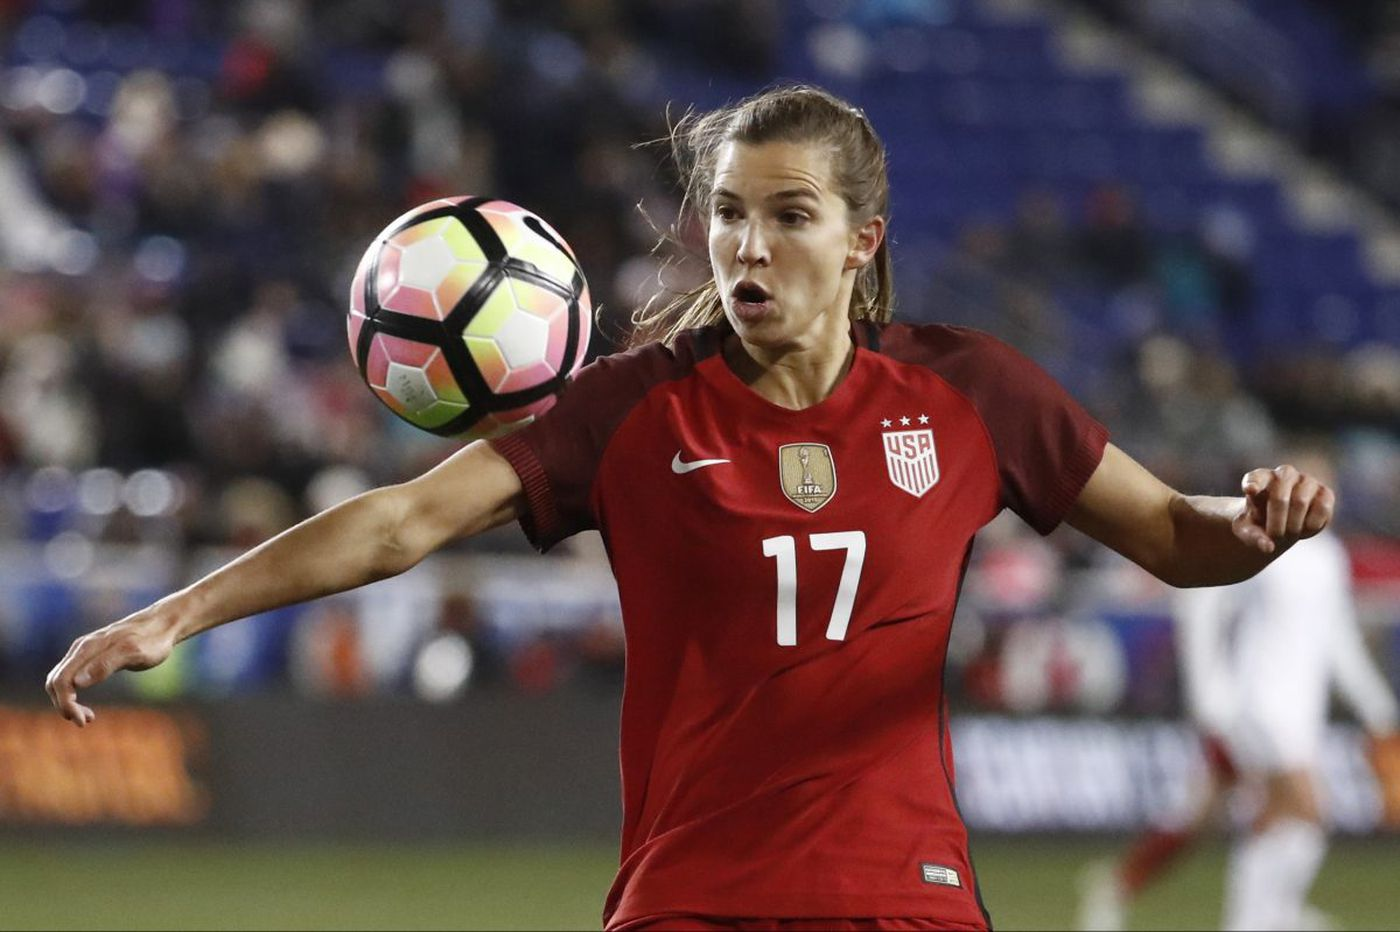 U.S. women's national team star Tobin Heath set to return from long injury absence